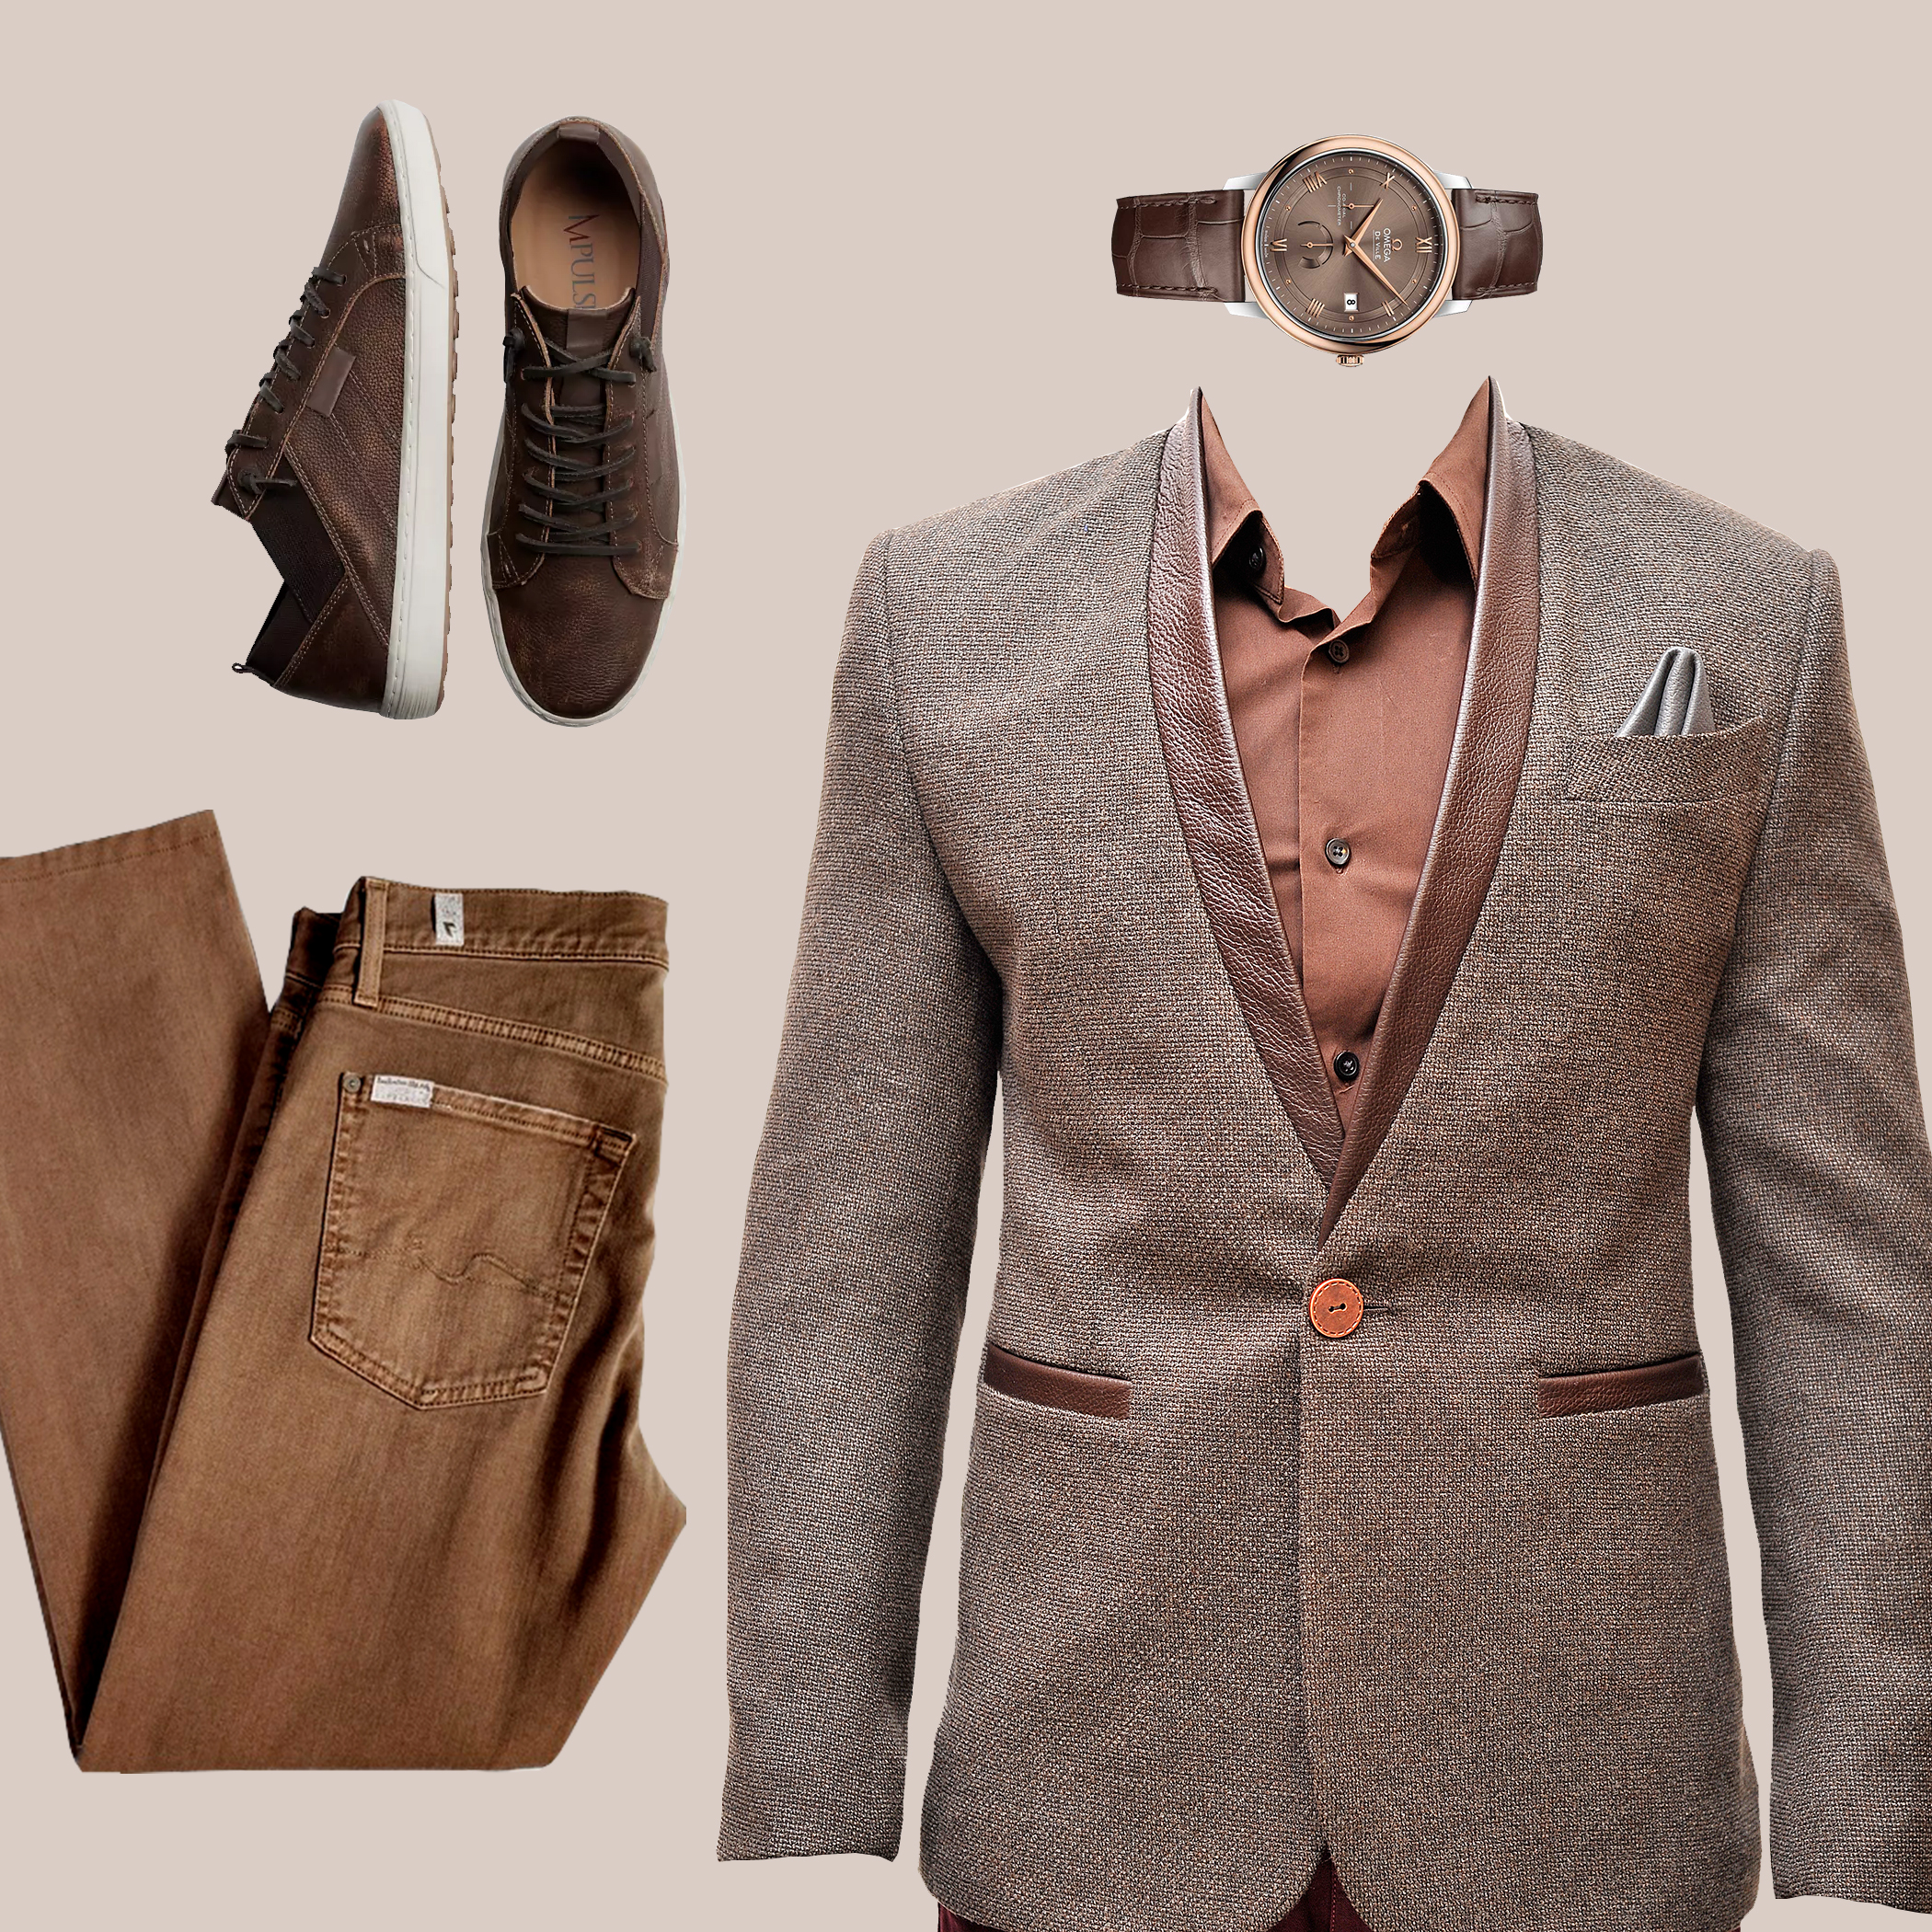 Designer Blazer outfits for men in Nairobi Kenya - Men's designer clothes